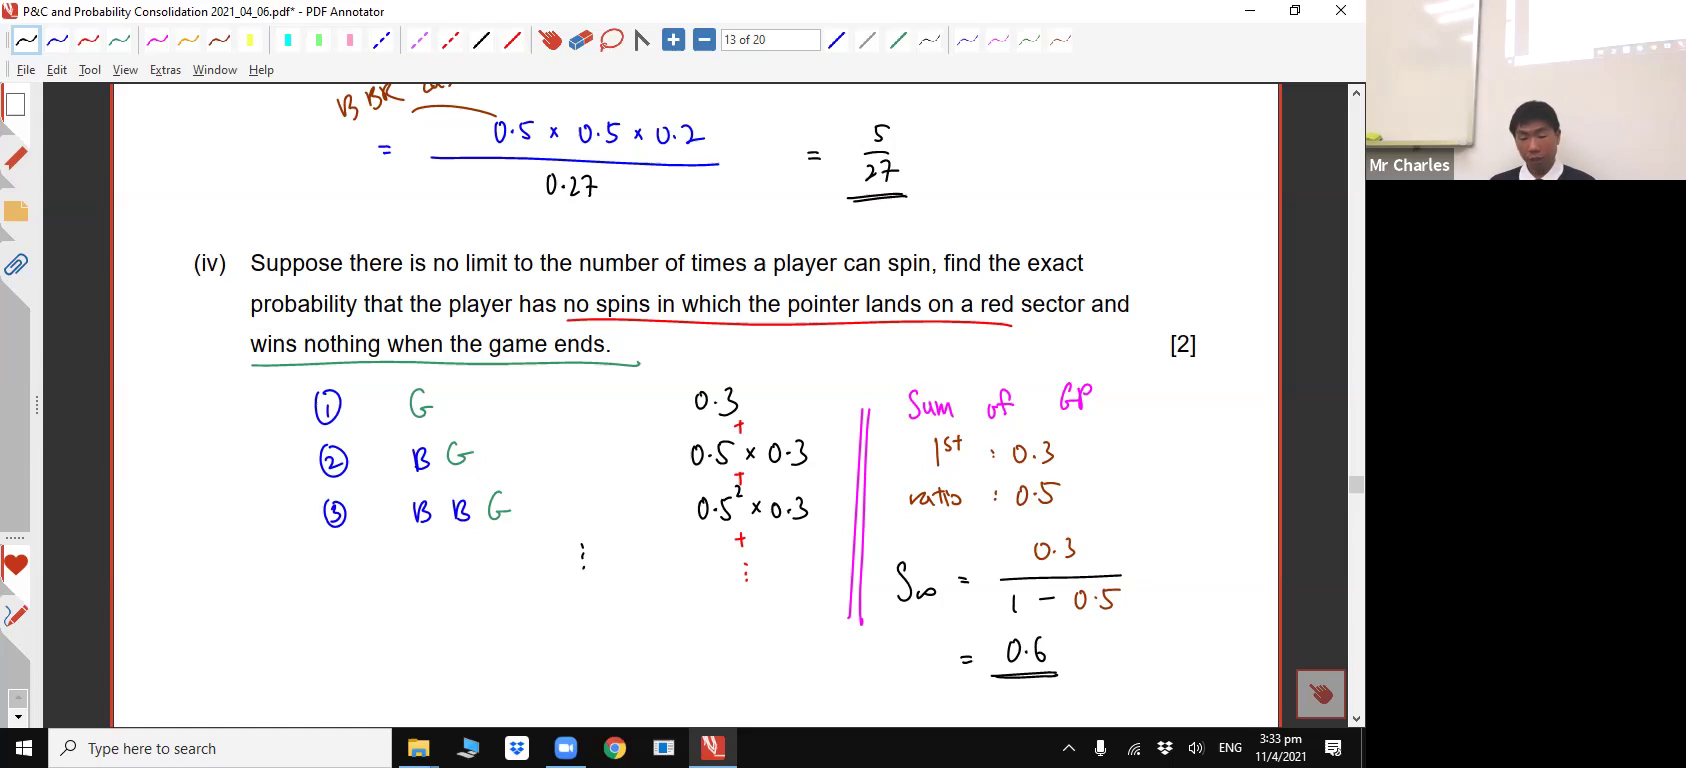 [PROBABILITY REVISION] Conditional Probability